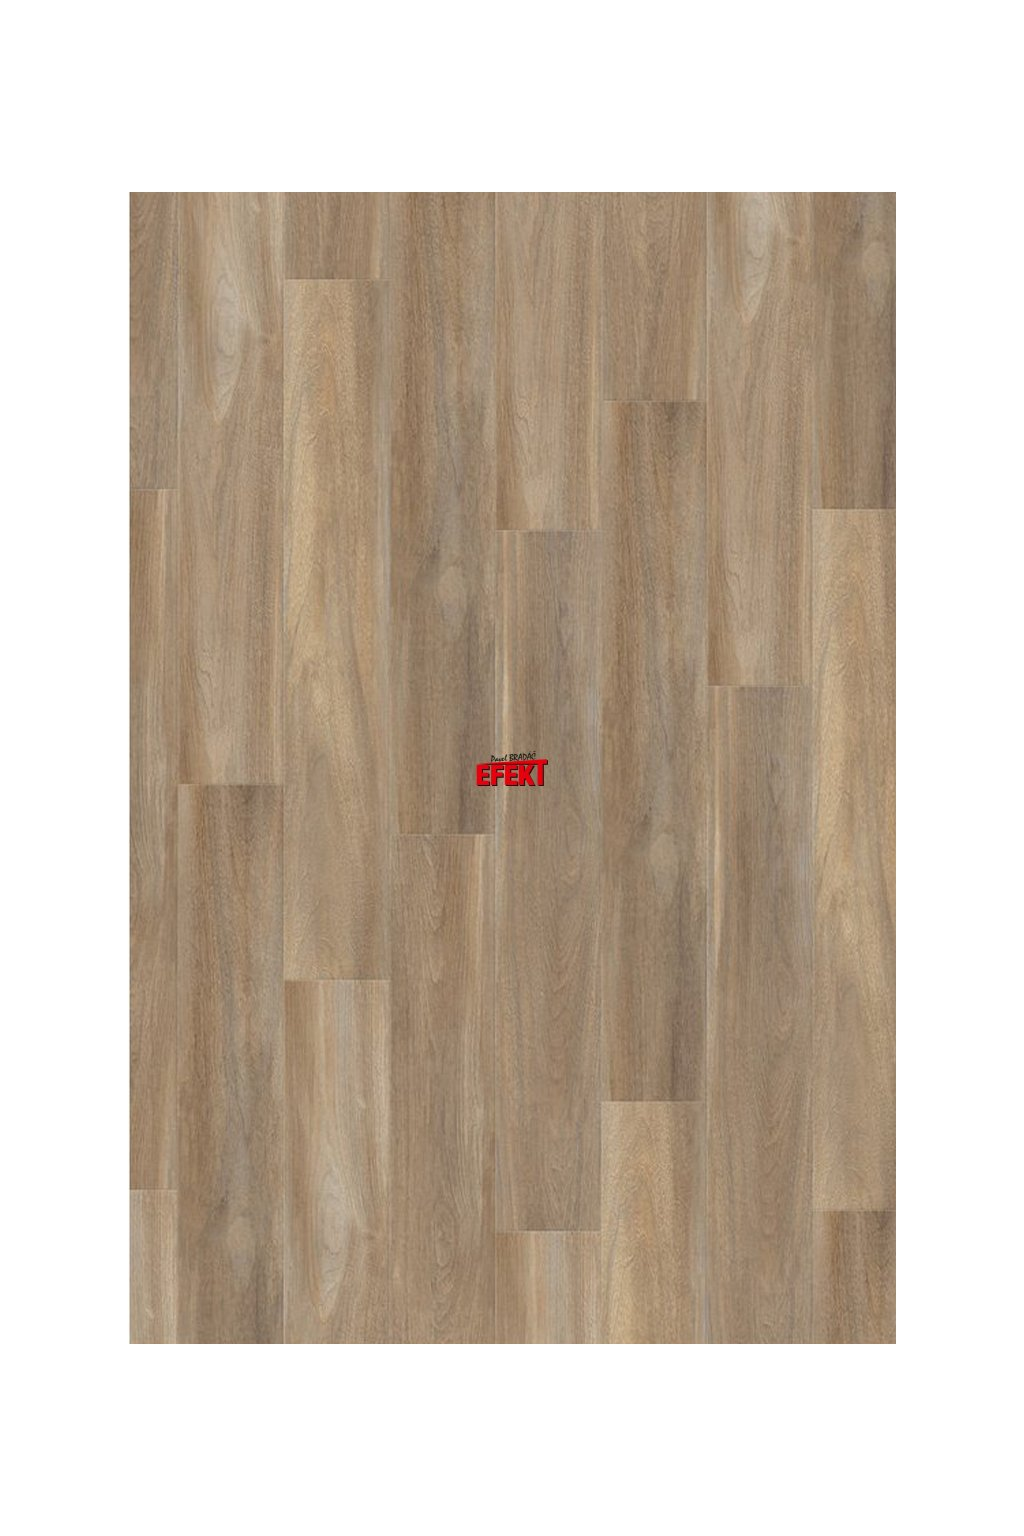 Gerflor Clic 55 Bostonian Oak